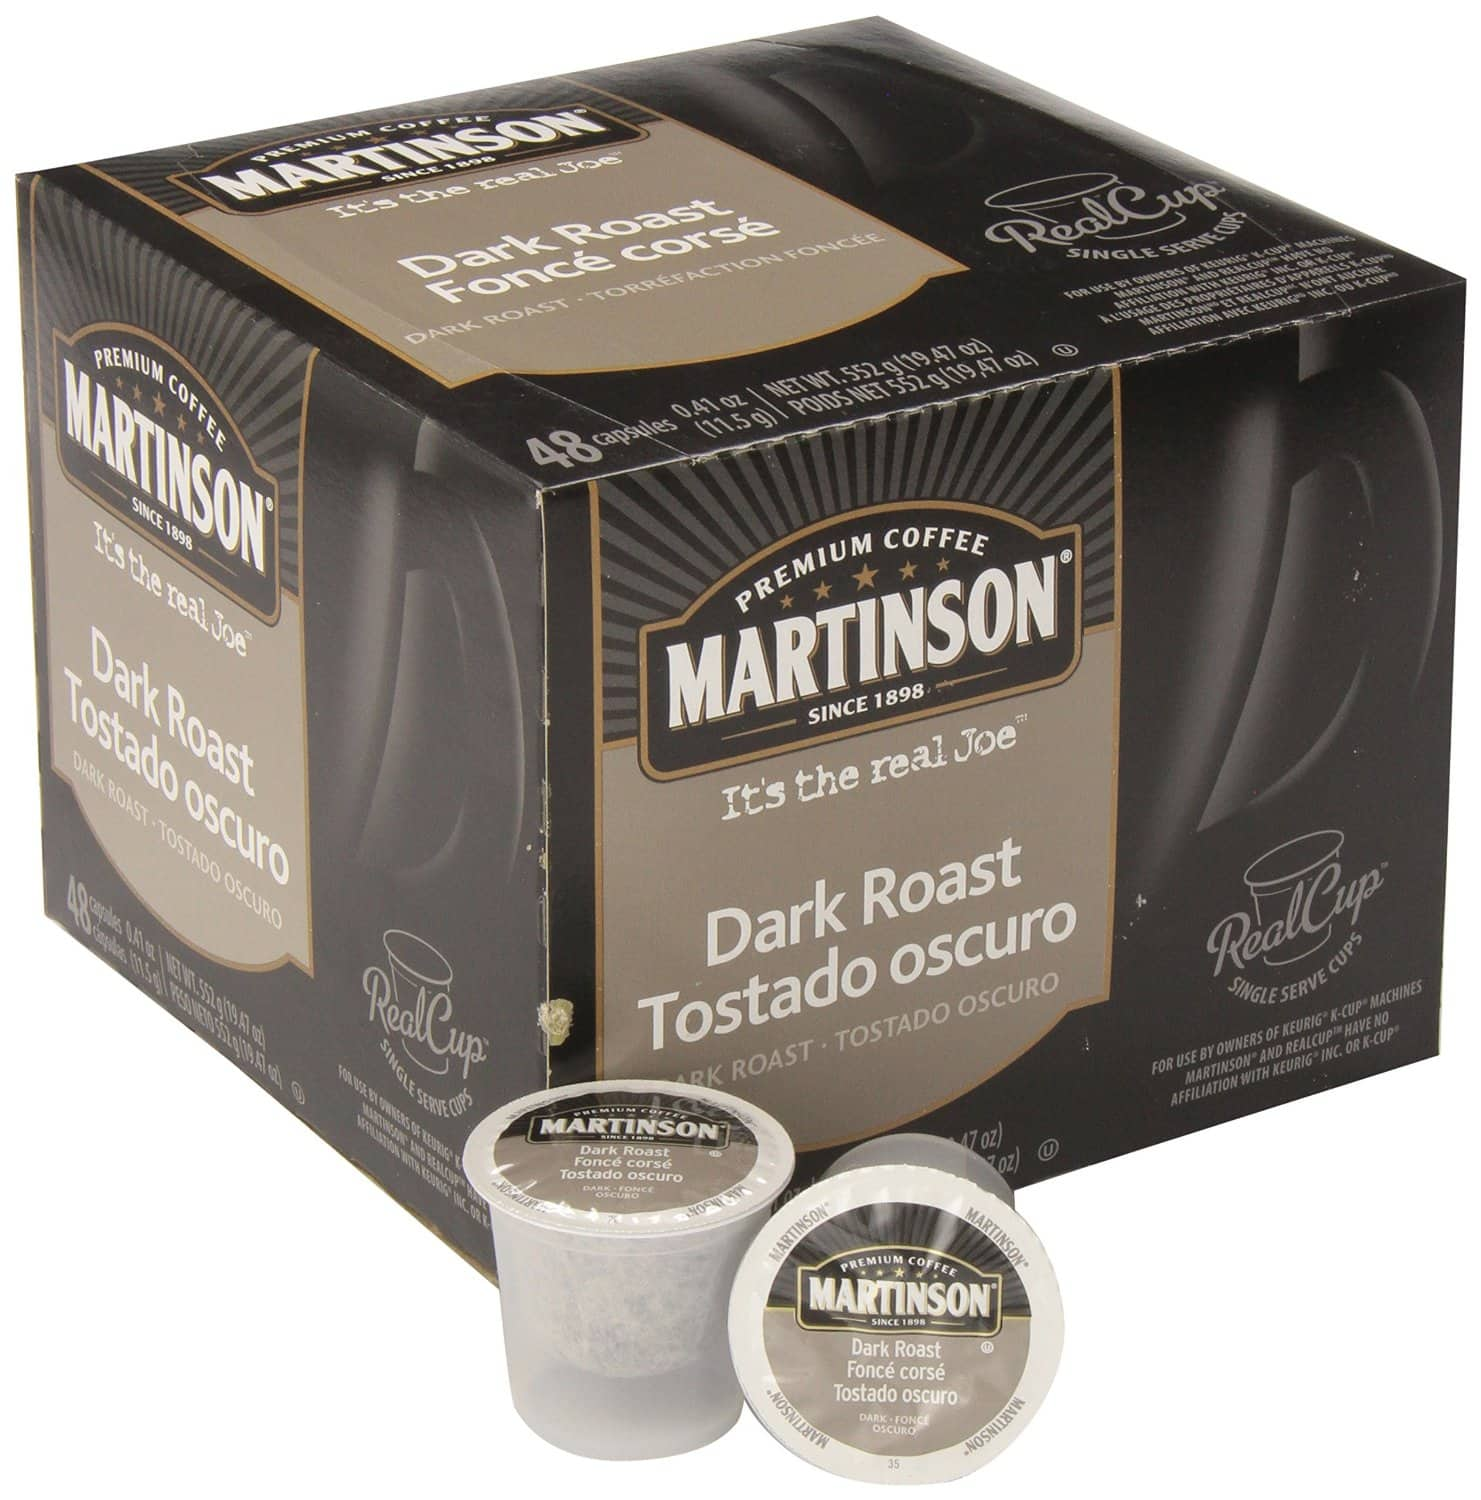 48-Pack Martinson Coffee Single Serve RealCup K-Cups from $13.70 + Free Shipping